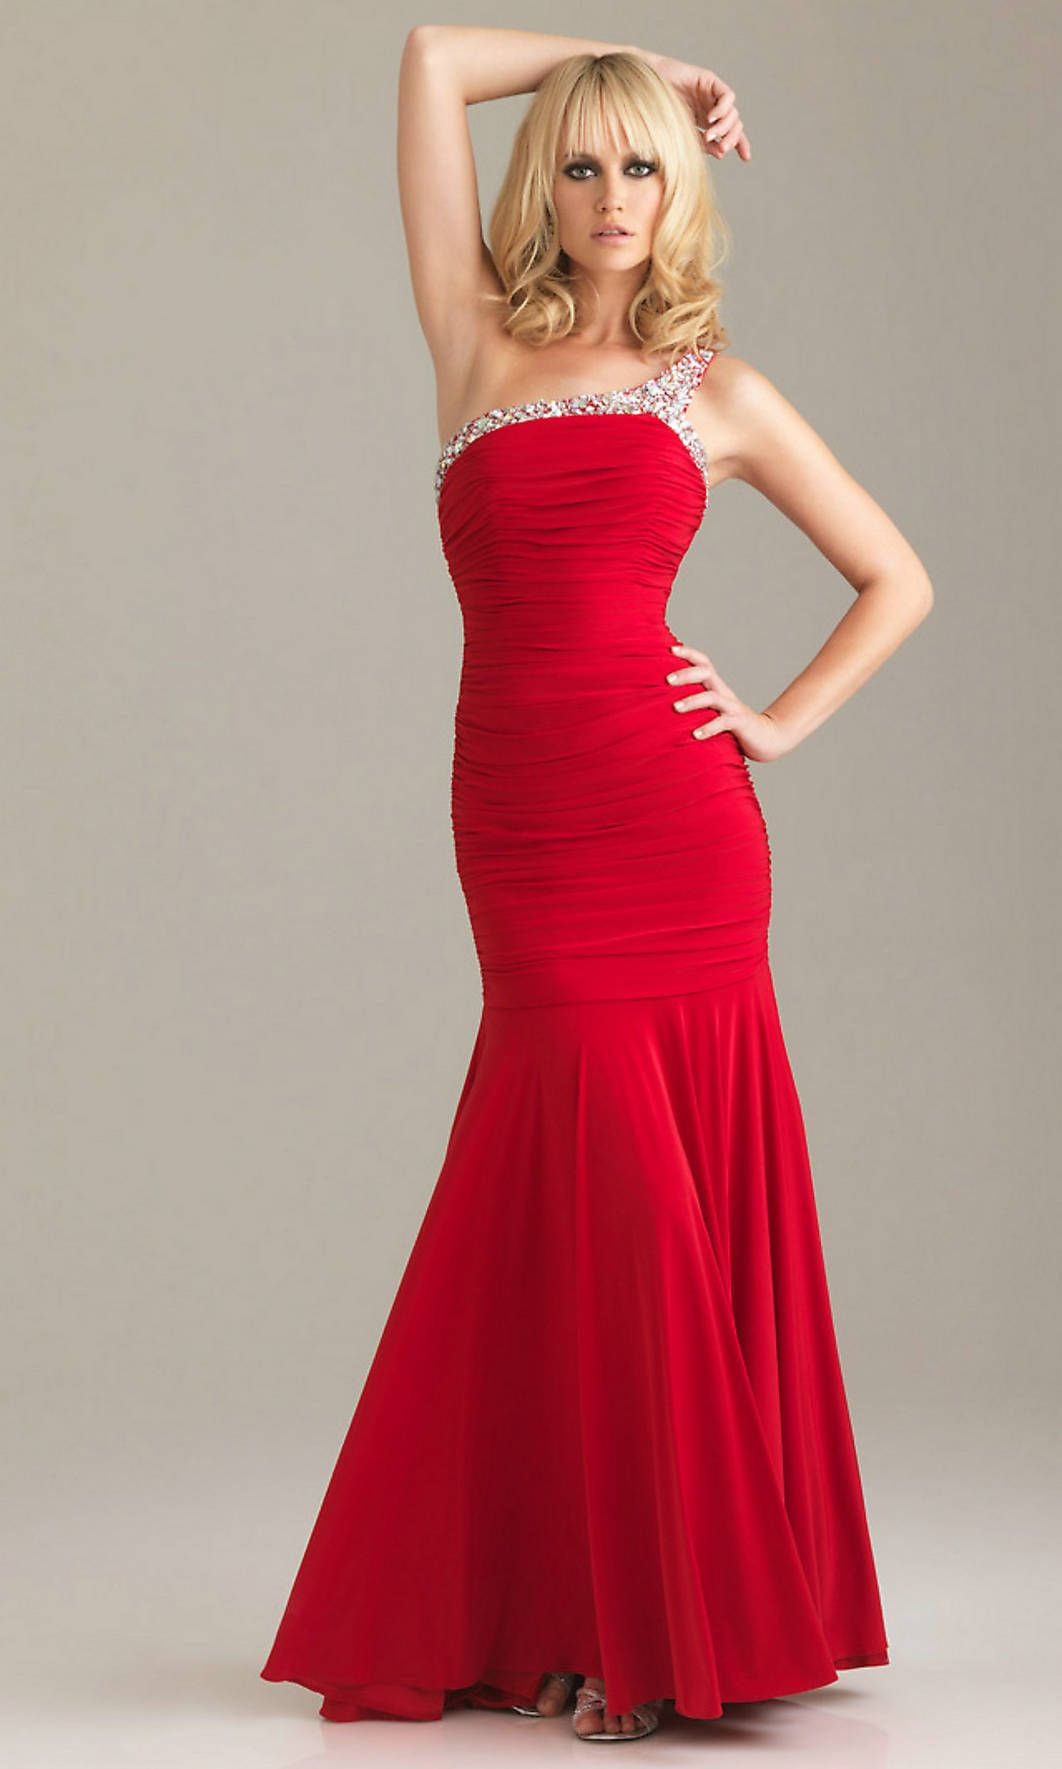 Open back sequin trim pleated skirt one shoulder natural long red